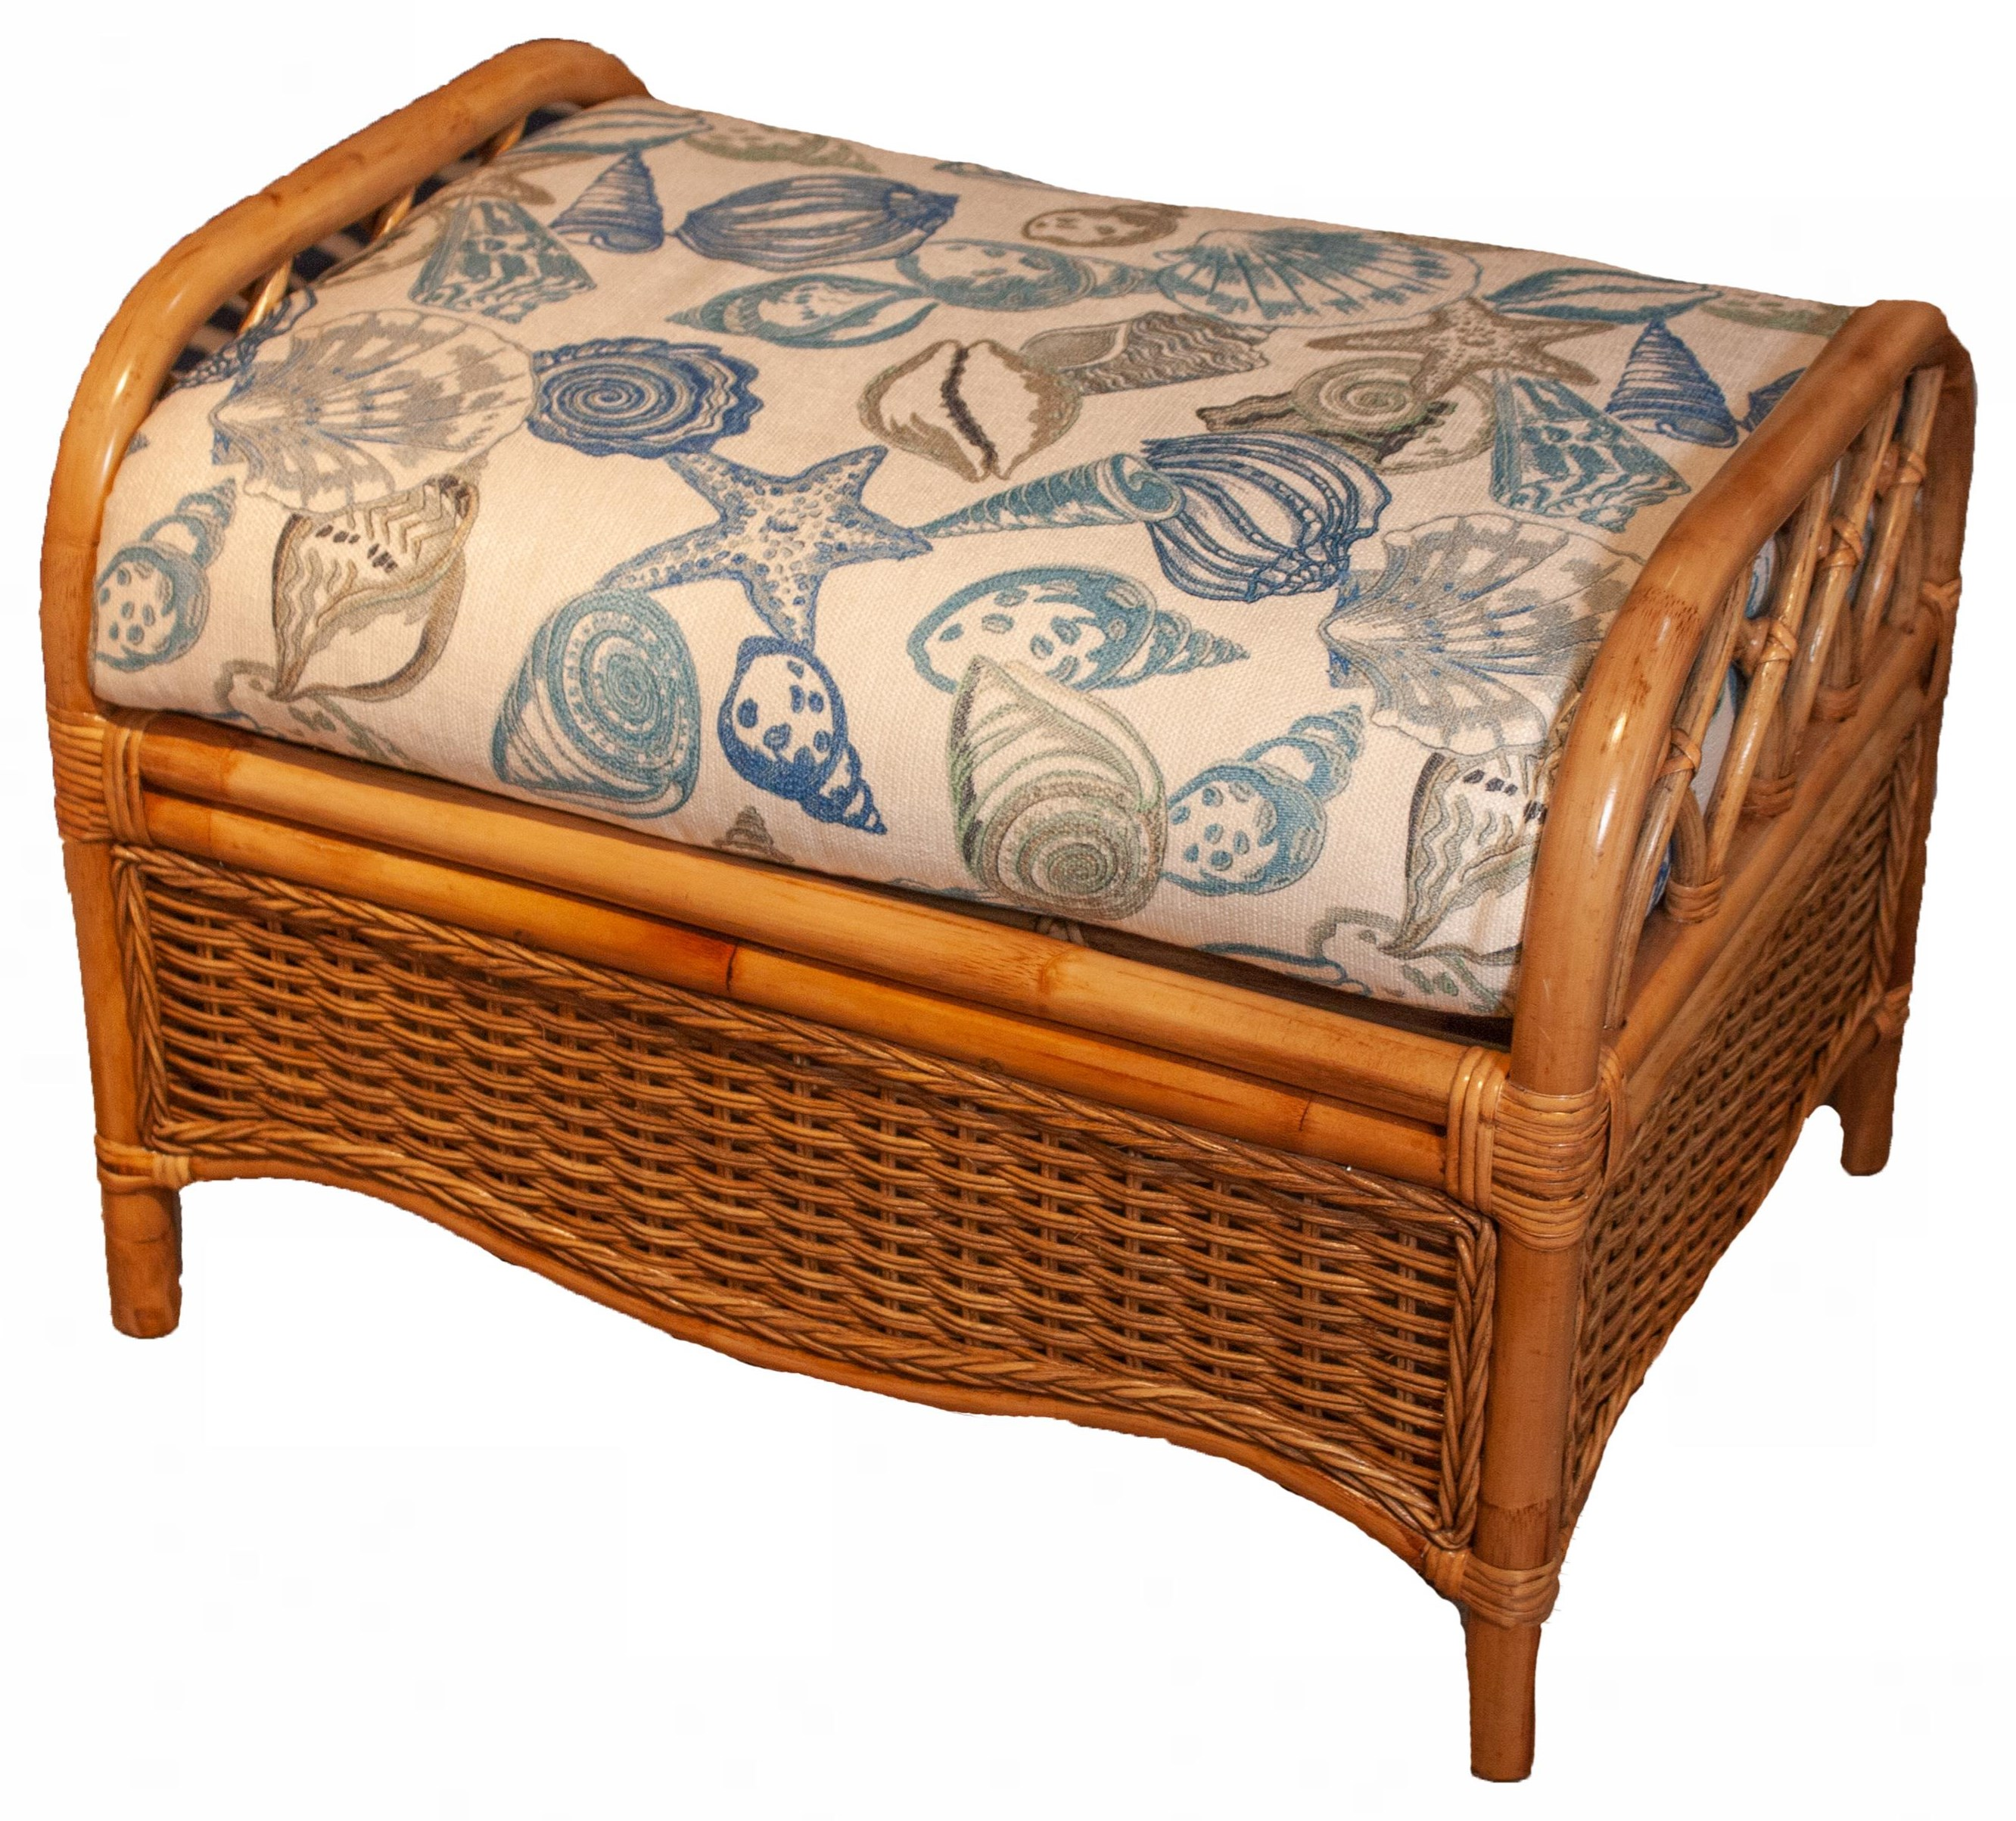 Everglade Rattan Ottoman by Braxton Culler at Esprit Decor Home Furnishings